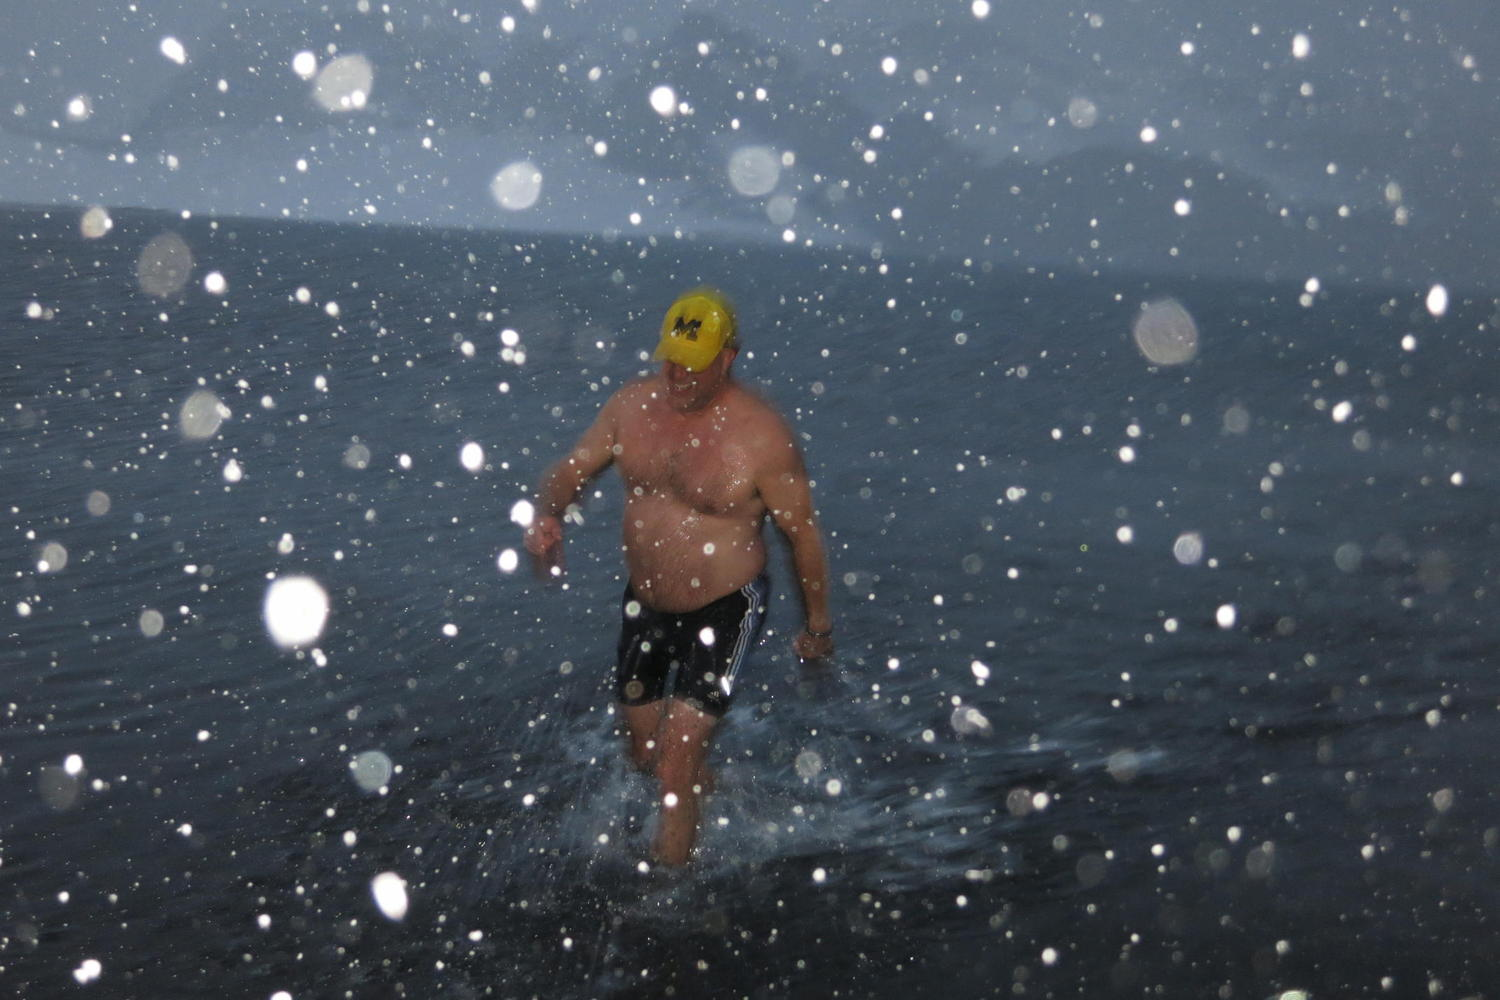 A brave soul emerges from the fabled polar plunge